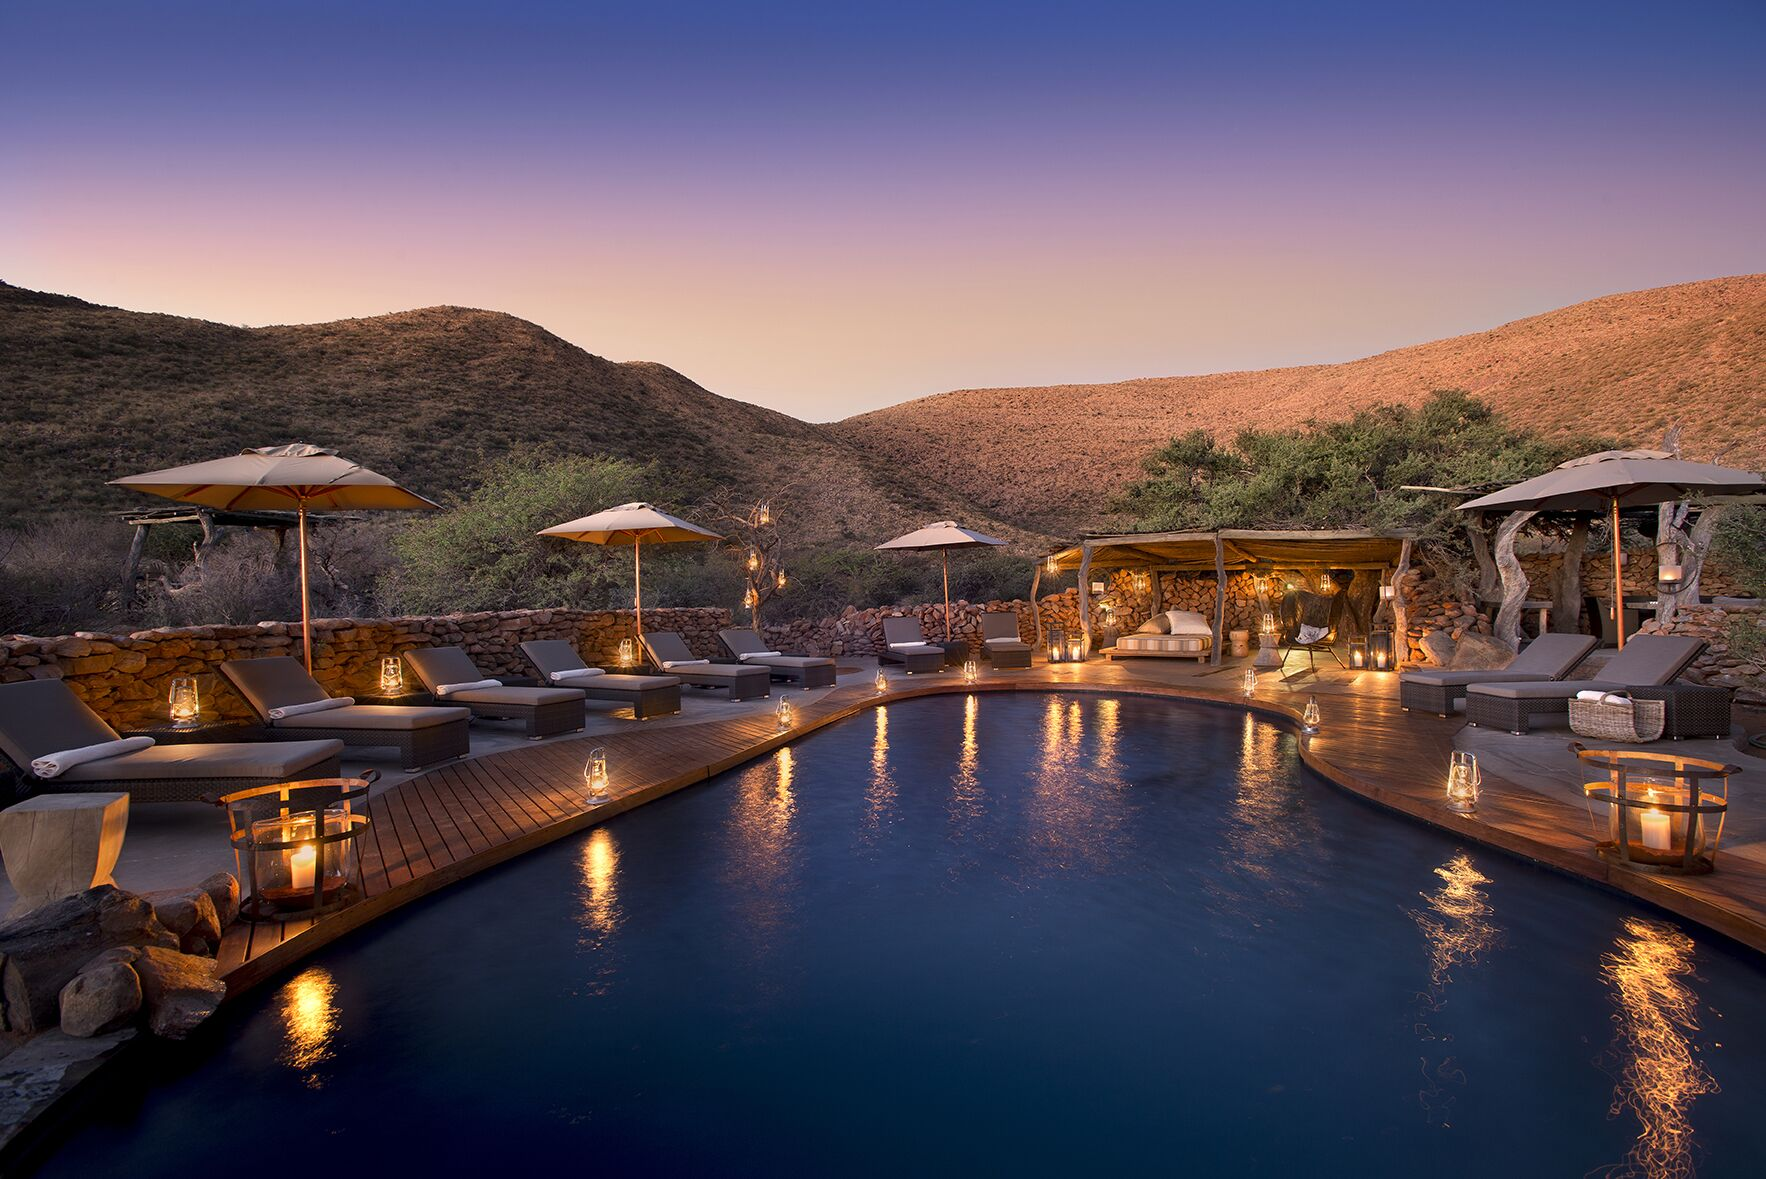 lantern lit pool at sunset with chairs around the deck and hills in the background